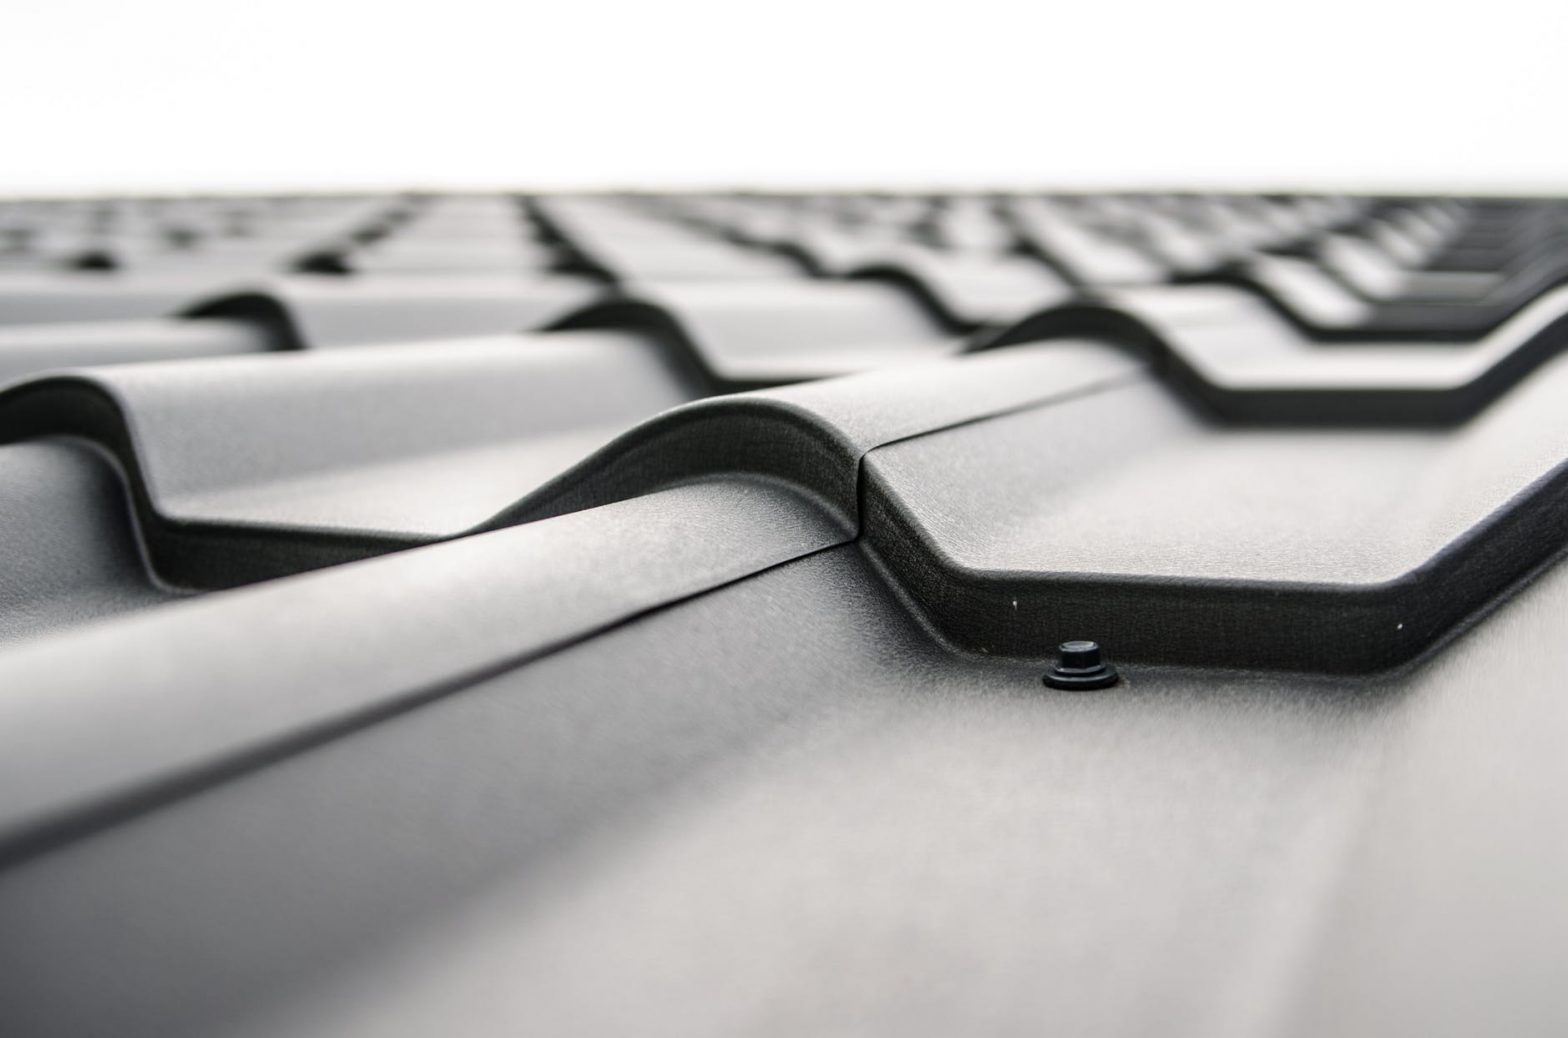 The Kind Of Roofing You Need Depends On Where You Live